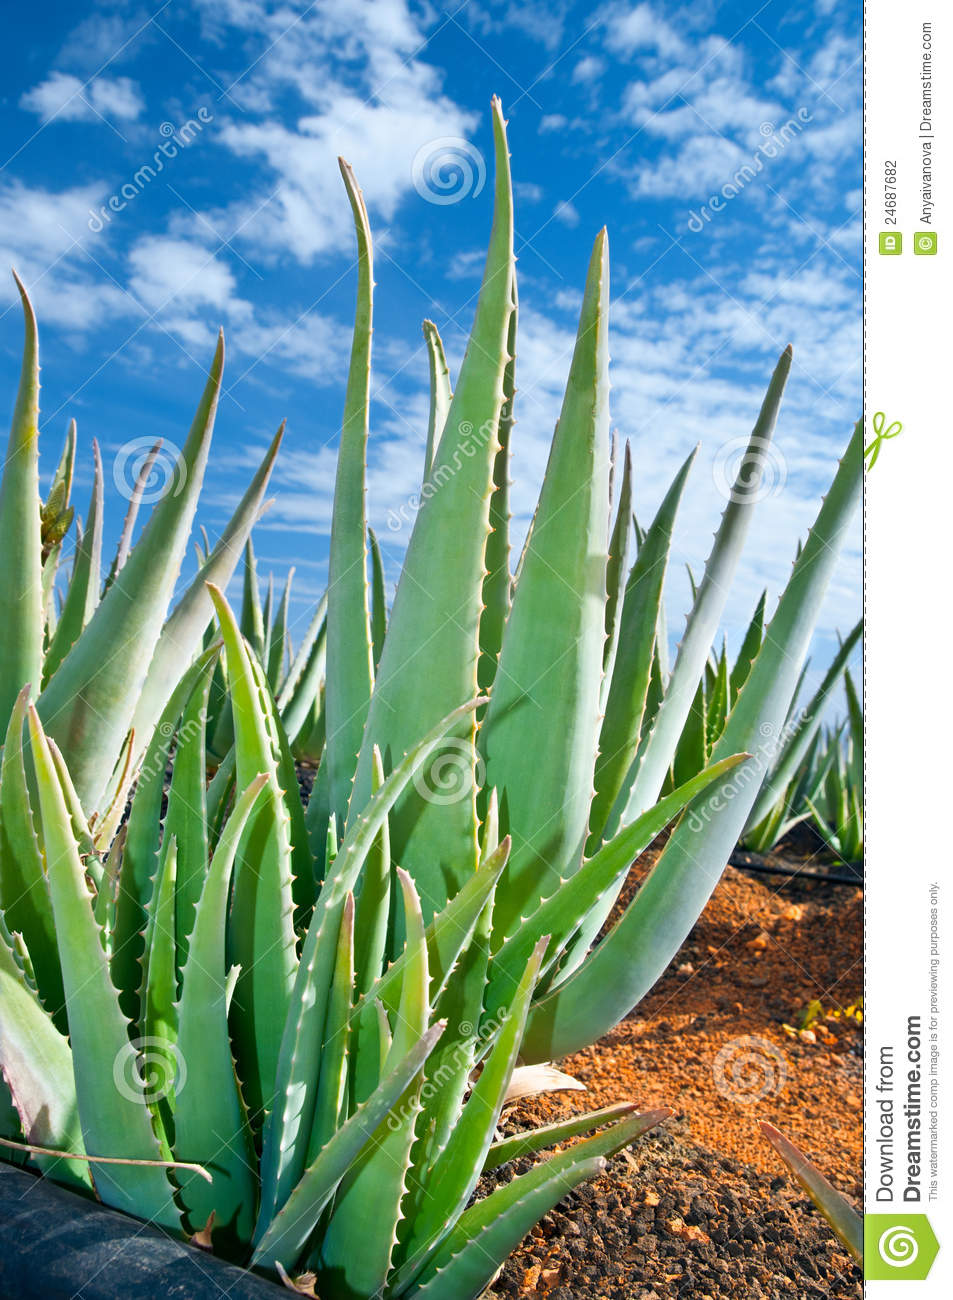 aloe vera plantage stockfoto bild von laub w ste aloe 24687682. Black Bedroom Furniture Sets. Home Design Ideas